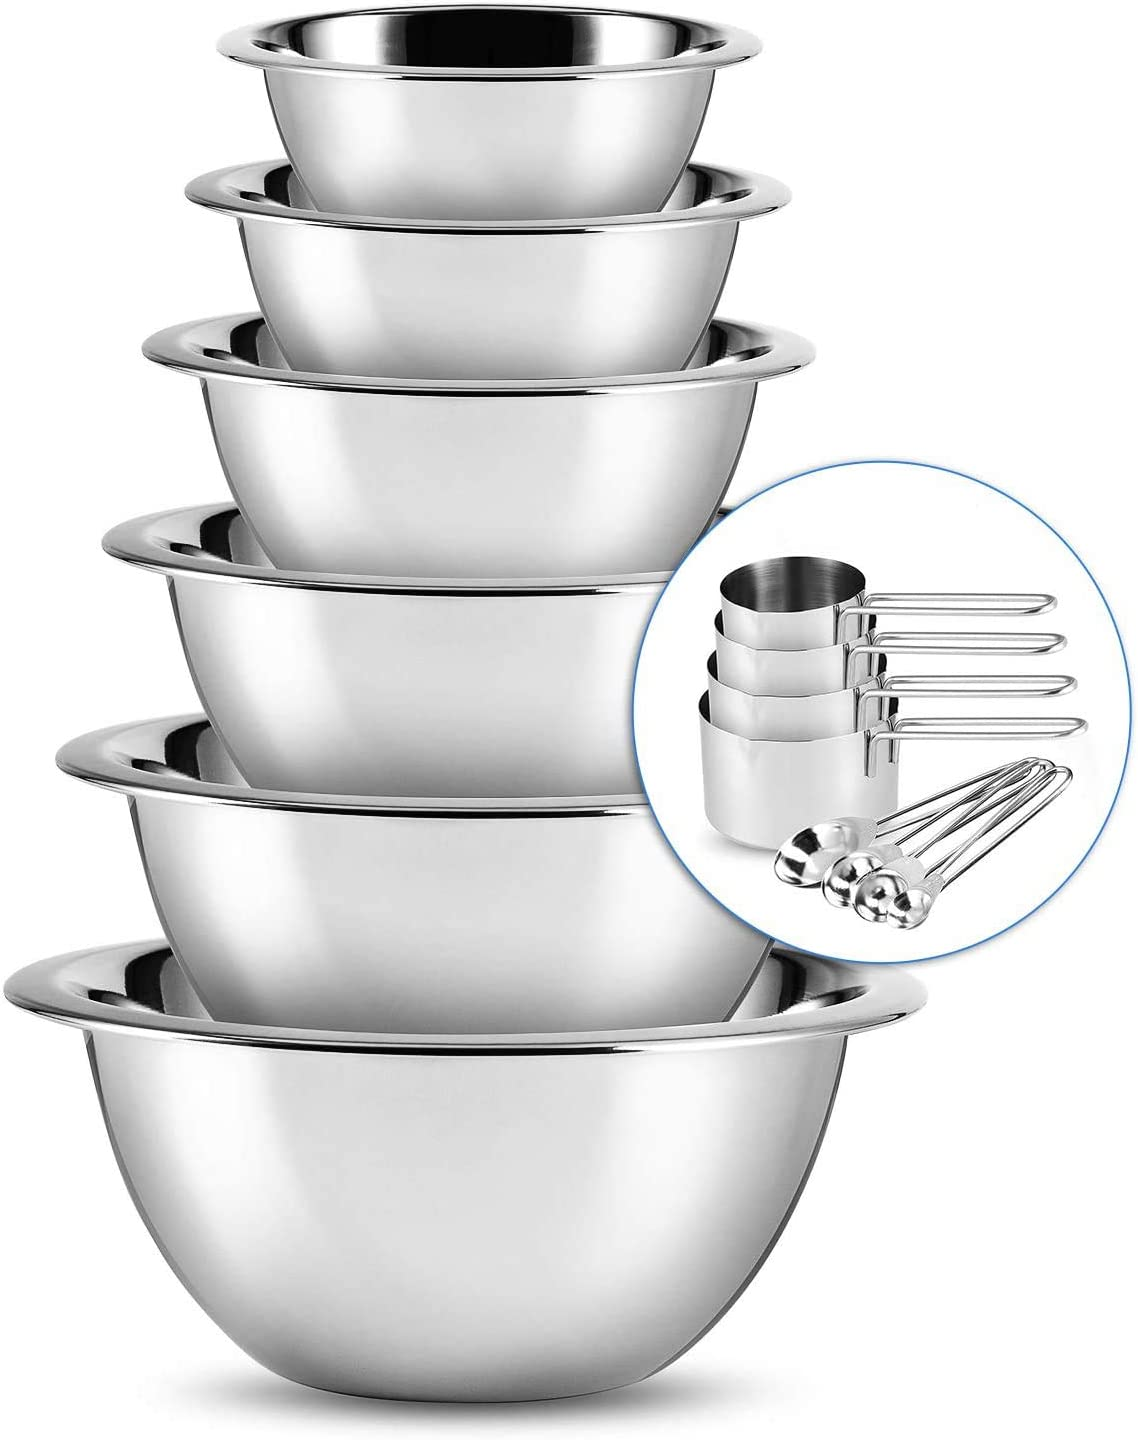 Stainless Steel Mixing Bowls - Mixing Bowl Set of 6 - Mixing Bowl Sets For Kitchen - SleekDine Kitchen Nesting Bowls Set With Measuring Cups And Spoons - Great For Cooking, Baking or Salad Prep